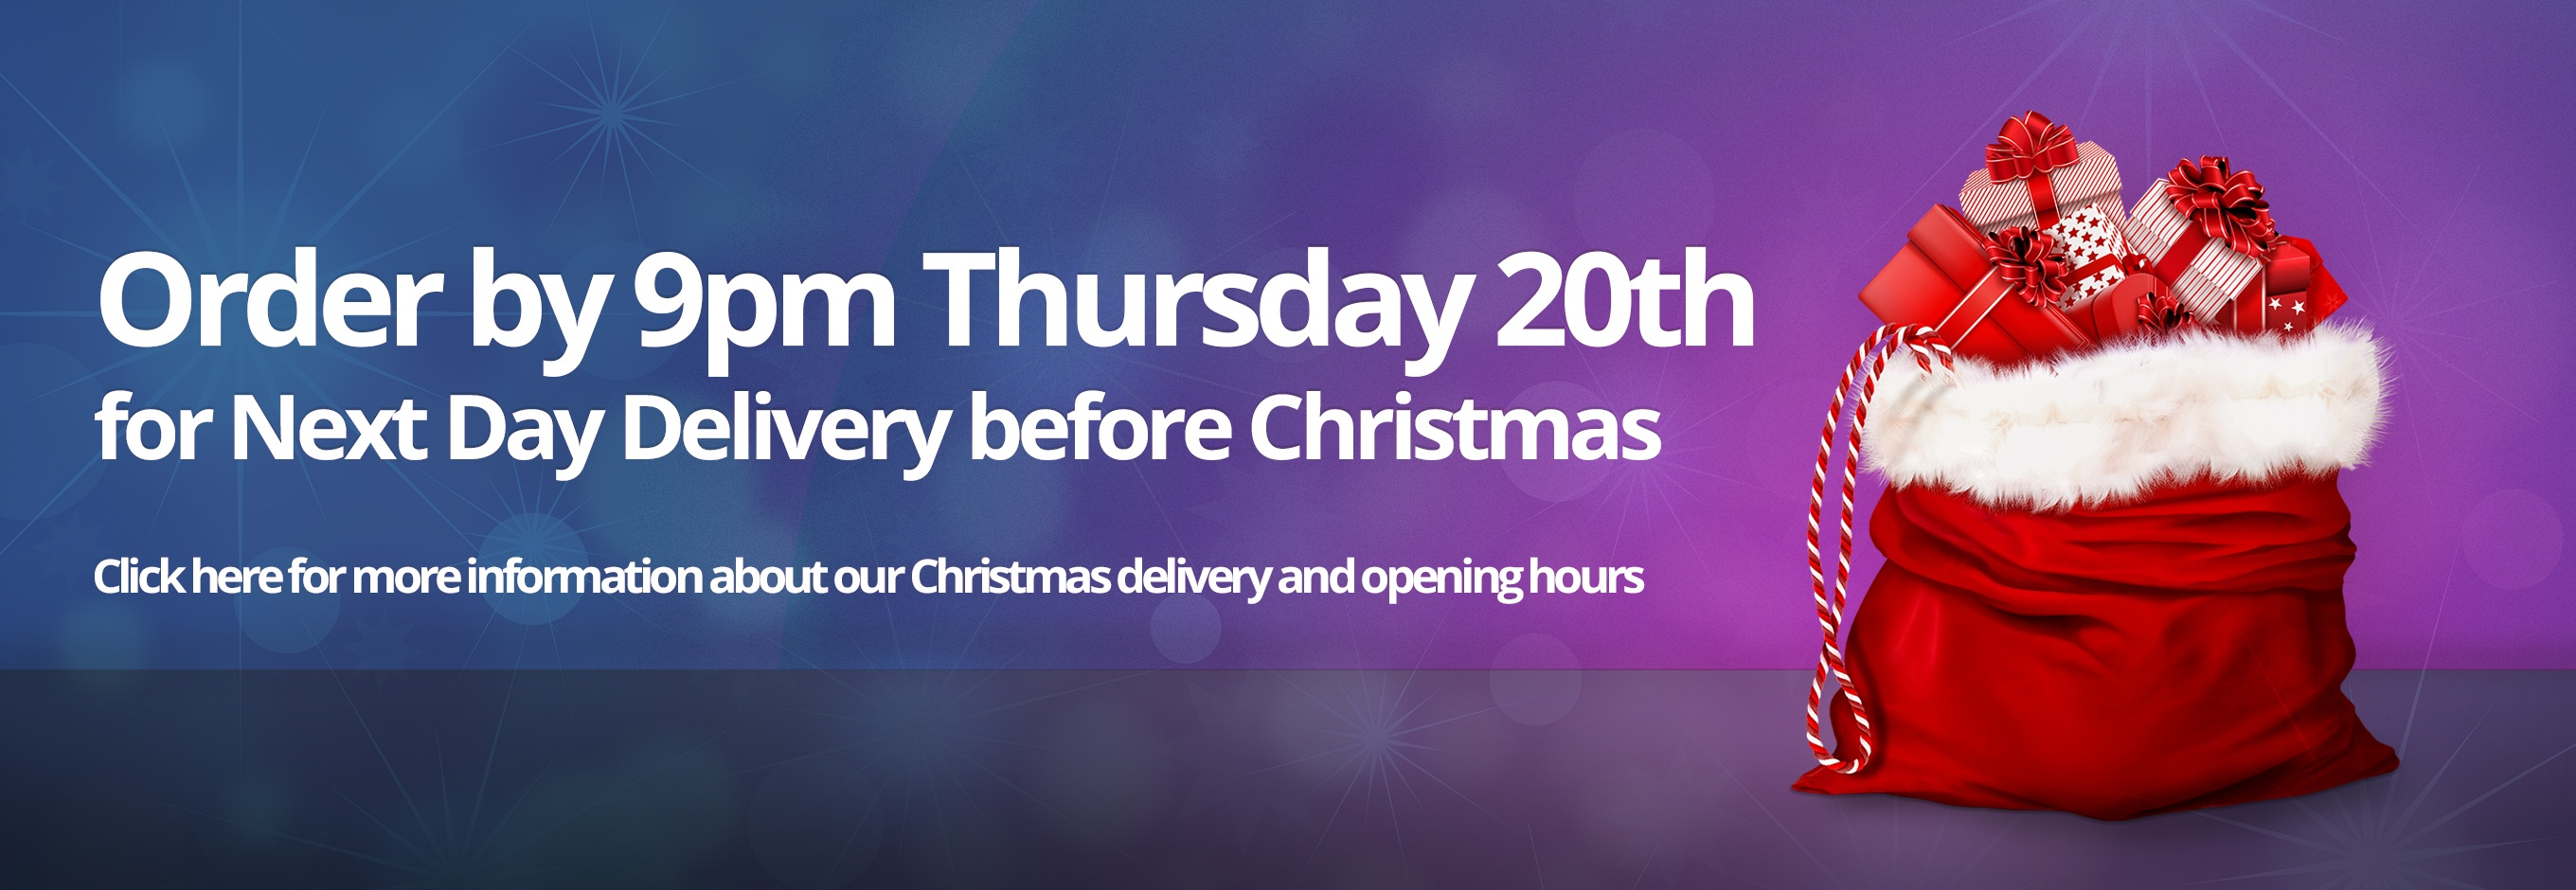 Christmas Delivery & Opening Hours